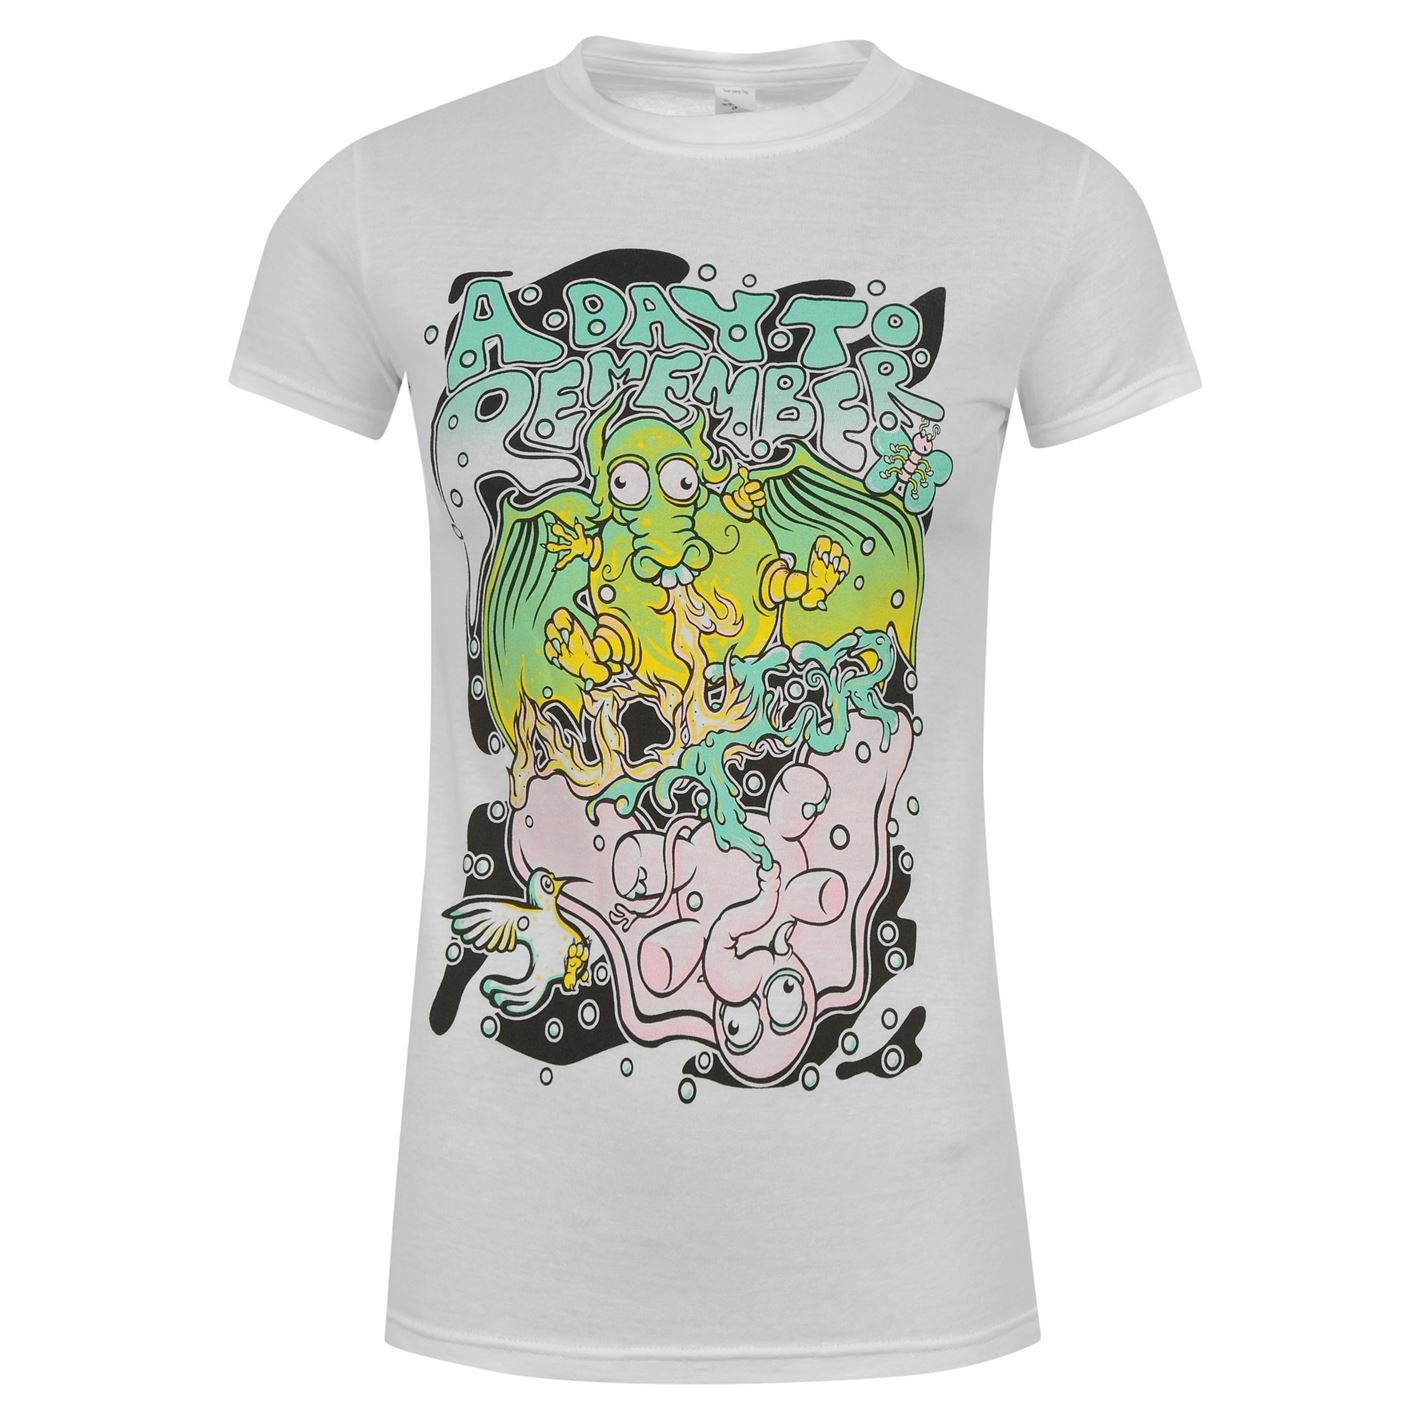 A Day to Remember Dragon & Elephant donna bianco musica t-shirt top maglietta, UK 12 (Medium)